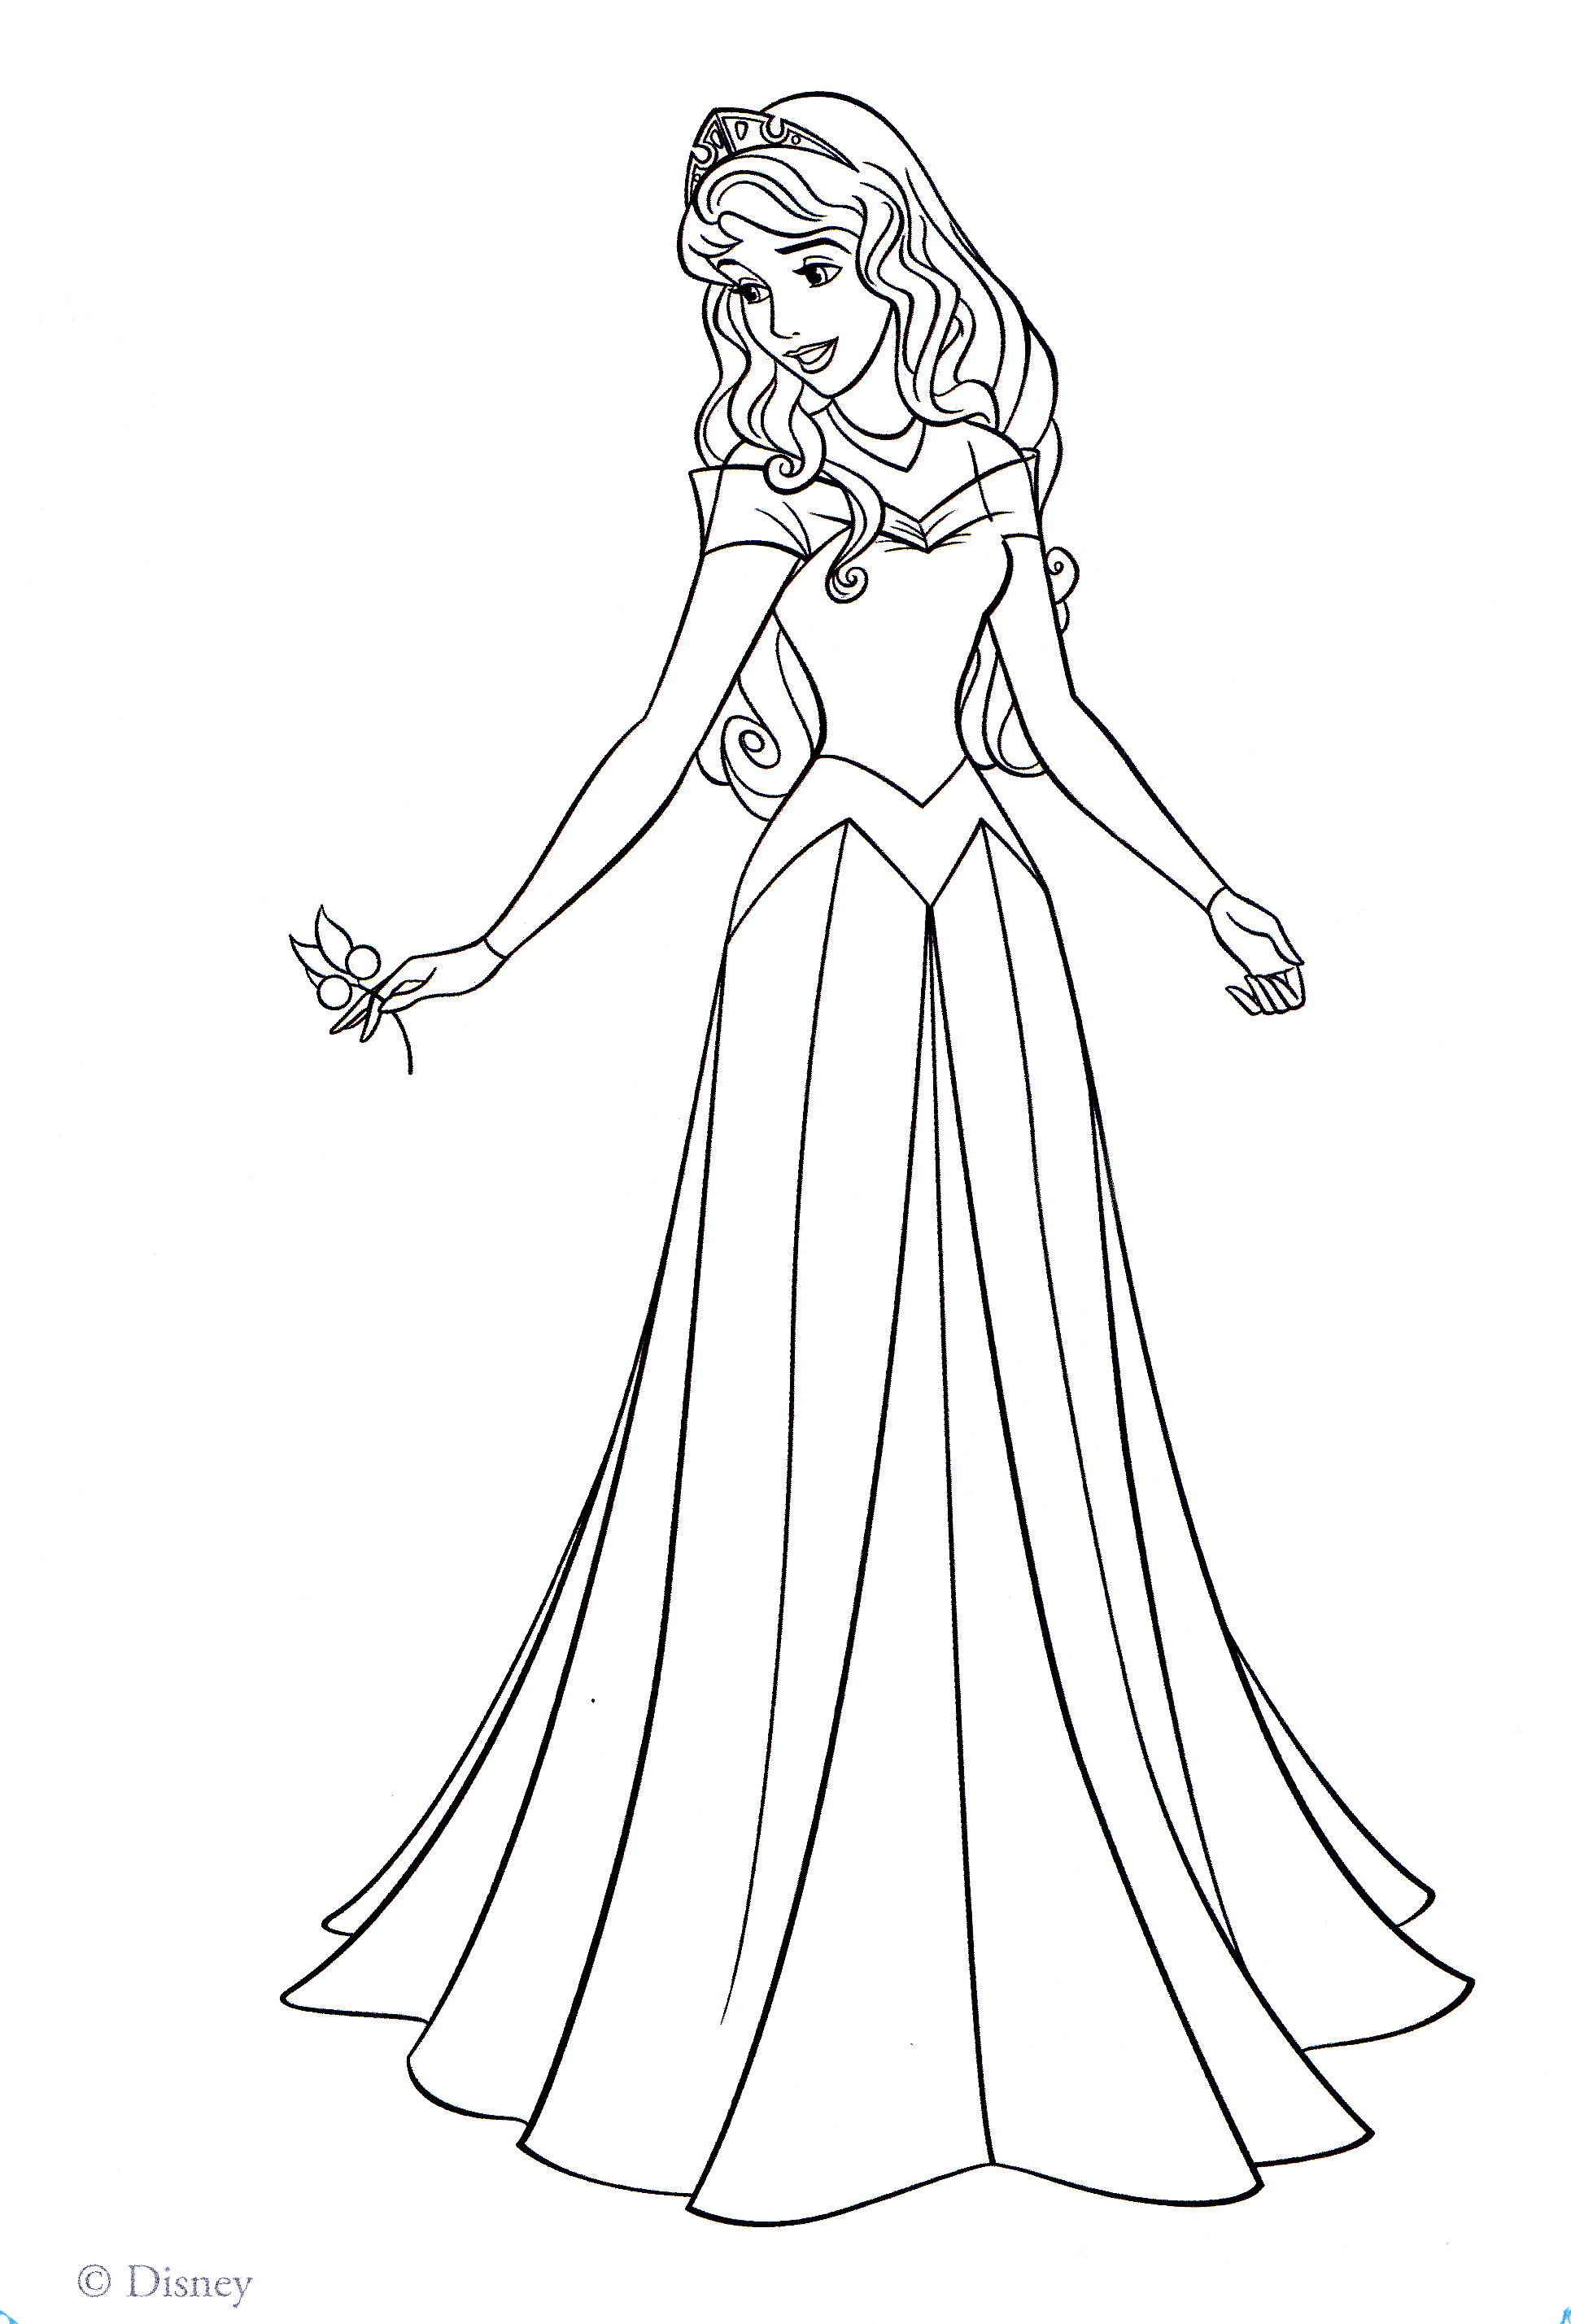 disney aurora coloring pages - photo#32